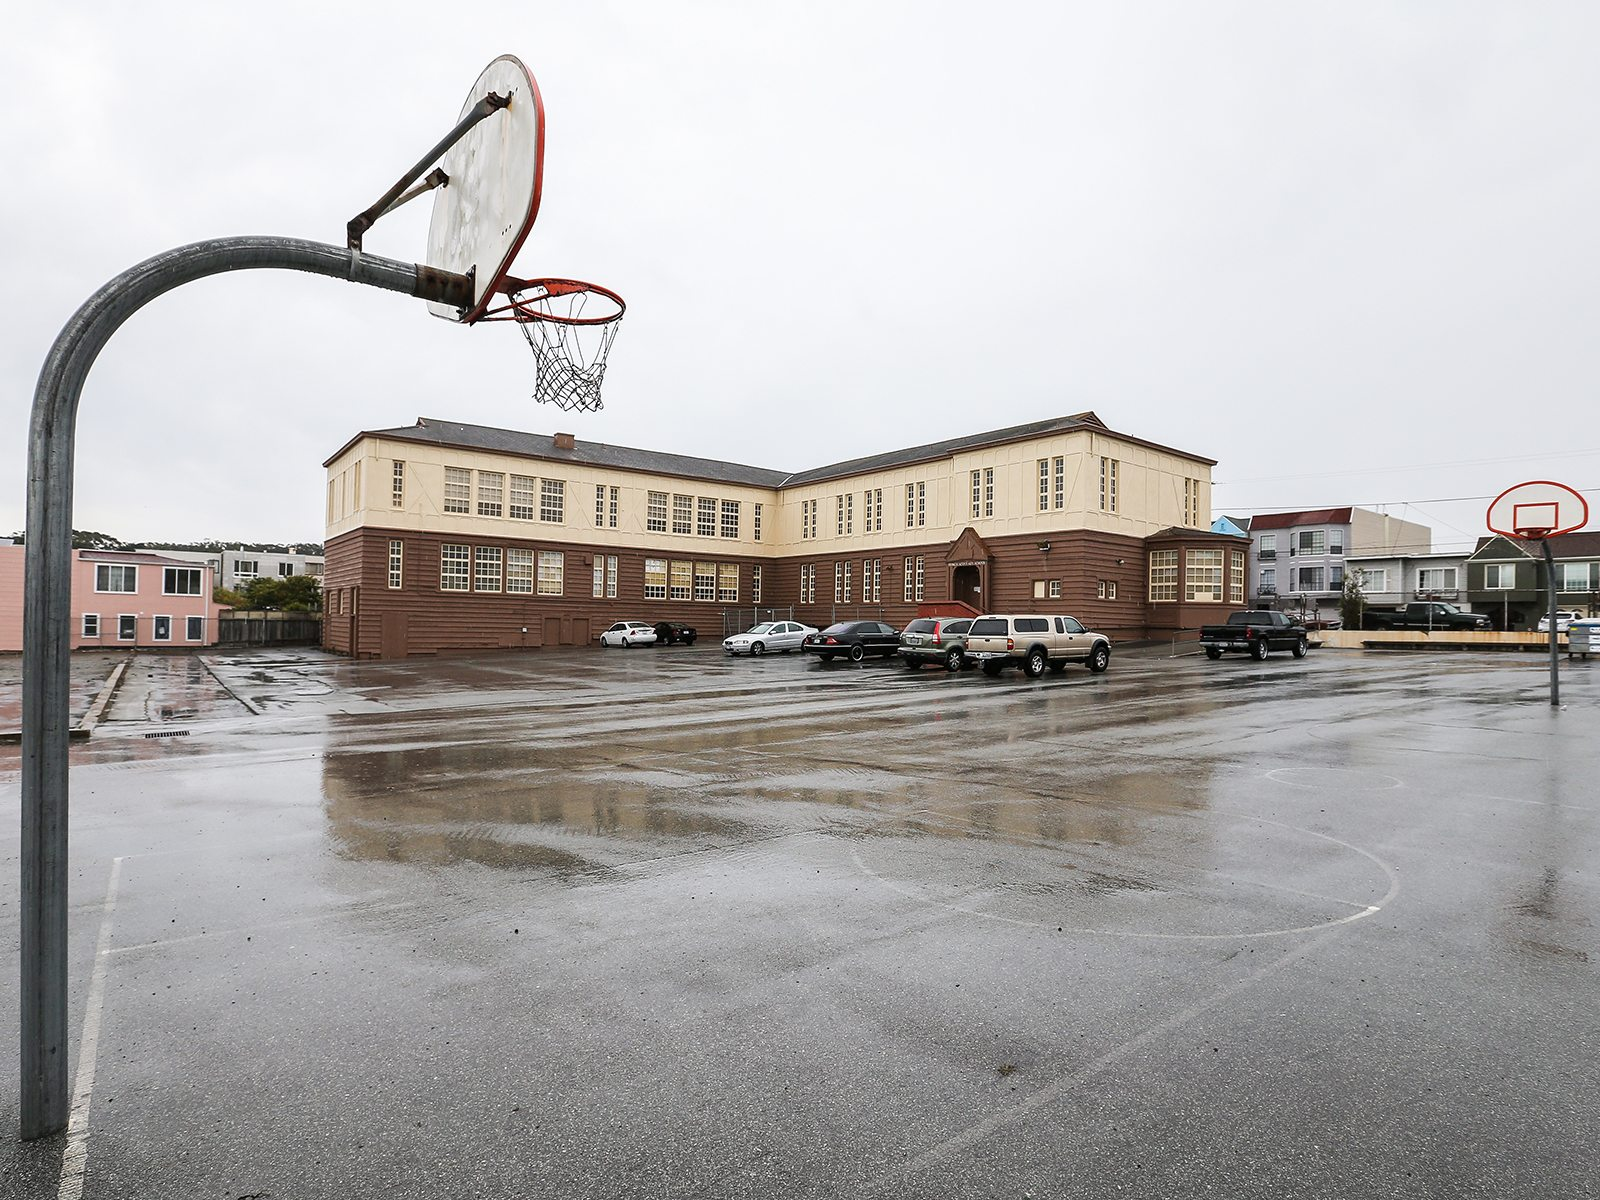 The city of San Francisco Parks to Pavement program plans to transform the site of Francis Scott Key School into a community resource with a community garden, a skate park, improved basketball courts and a host of other play and community areas. (Mike Koozmin/S.F. Examiner)